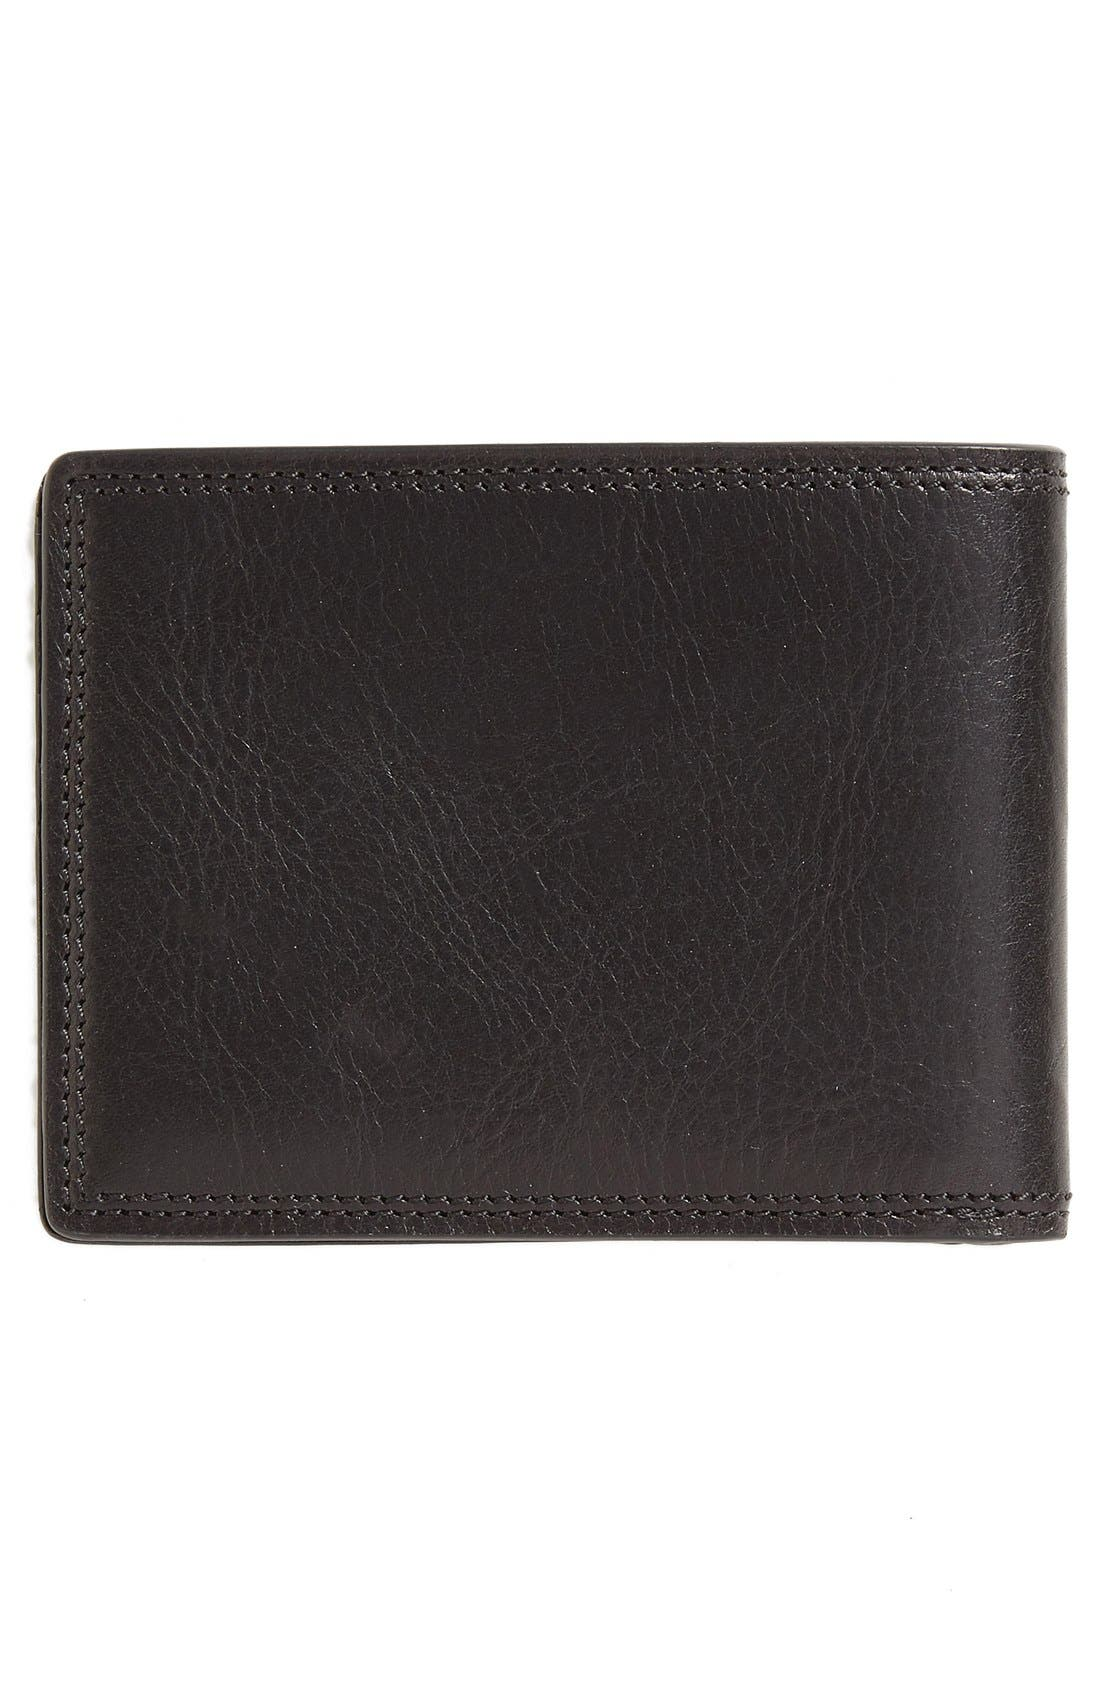 Leather Bifold Wallet,                             Alternate thumbnail 3, color,                             Black